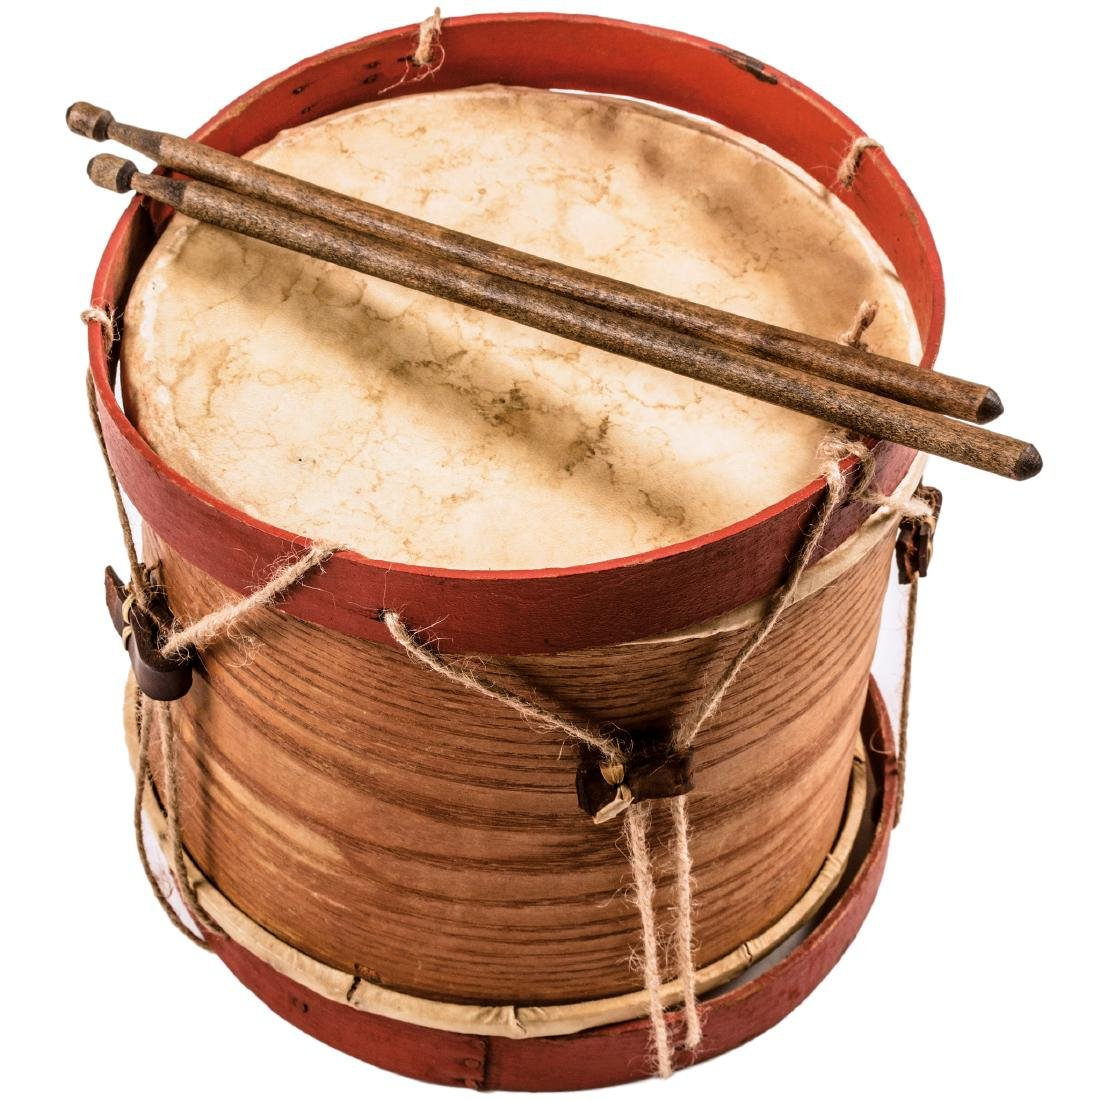 Civil War Era Child's Drum with Wooden Drumsticks